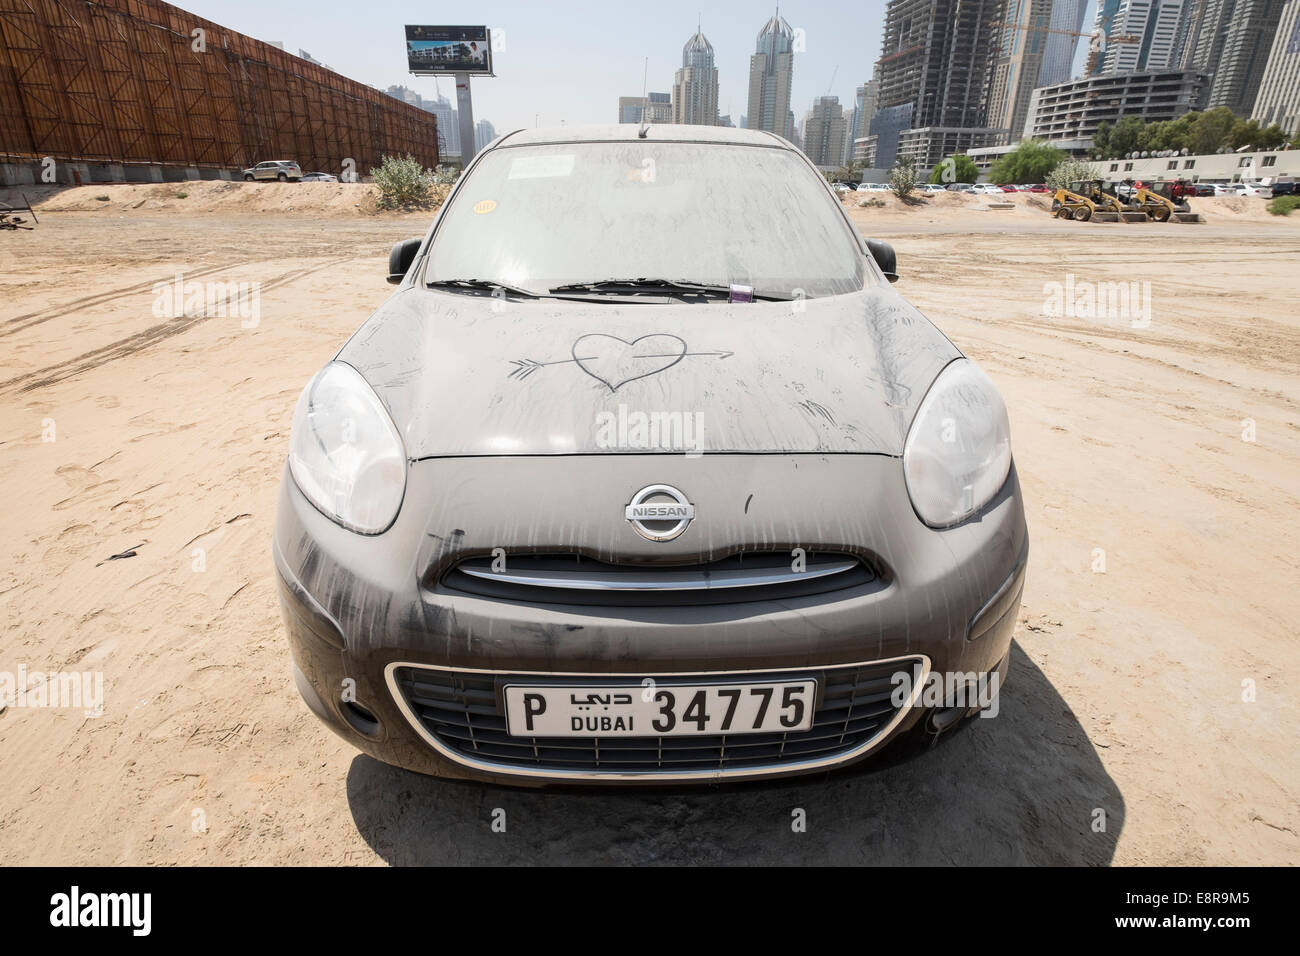 sand covered abandoned car in a car parking lot  in Dubai United Arab Emirates - Stock Image